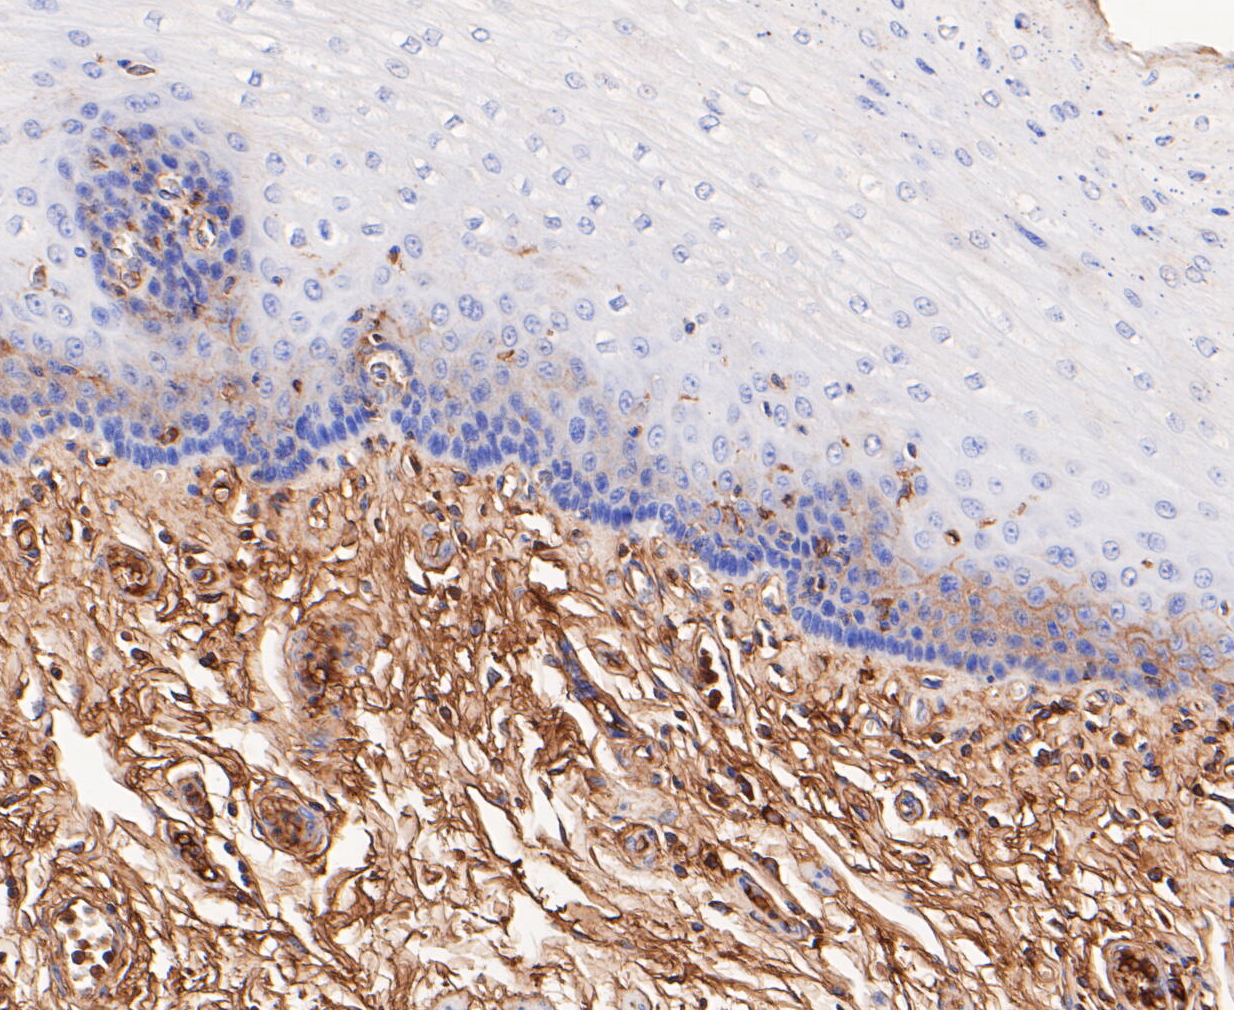 Immunohistochemical analysis of paraffin-embedded human esophagus tissue using anti-ACADM antibody. The section was pre-treated using heat mediated antigen retrieval with Tris-EDTA buffer (pH 8.0-8.4) for 20 minutes.The tissues were blocked in 5% BSA for 30 minutes at room temperature, washed with ddH2O and PBS, and then probed with the primary antibody (ET7109-74, 1/50) for 1 hour at room temperature. The detection was performed using an HRP conjugated compact polymer system. DAB was used as the chromogen. Tissues were counterstained with hematoxylin and mounted with DPX.